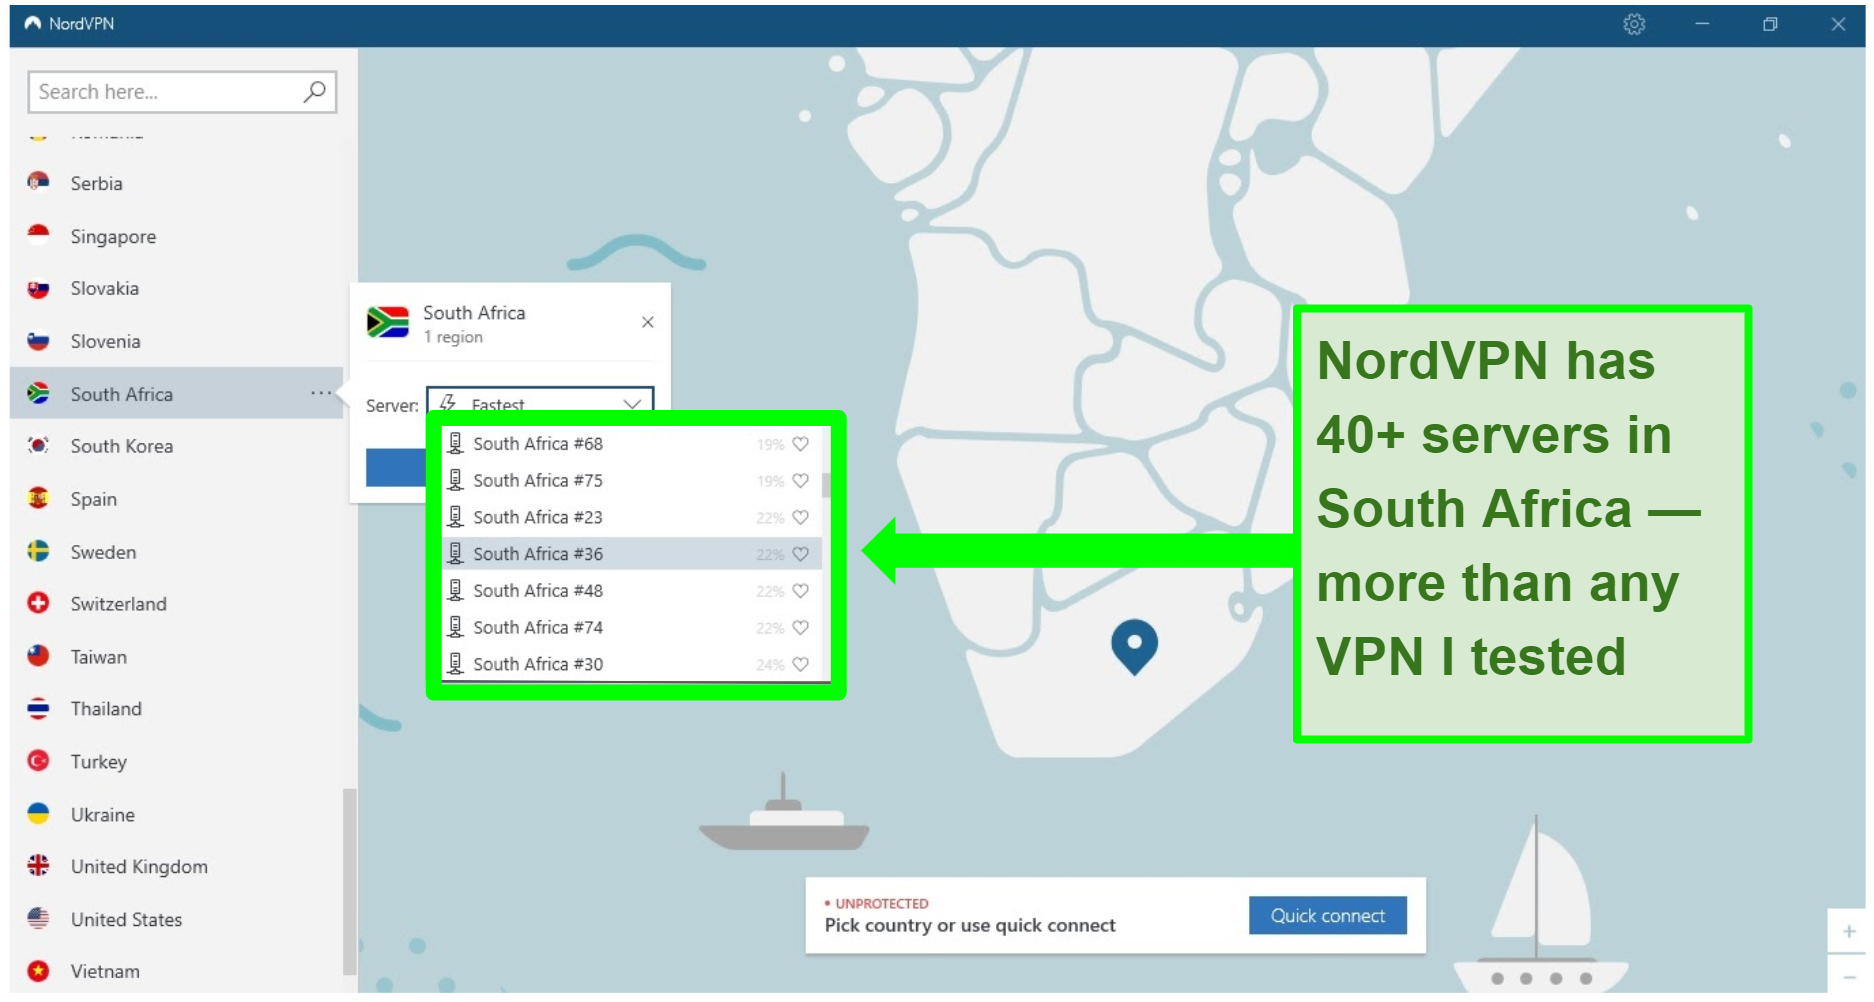 Screenshot of the NordVPN interface with servers in South Africa